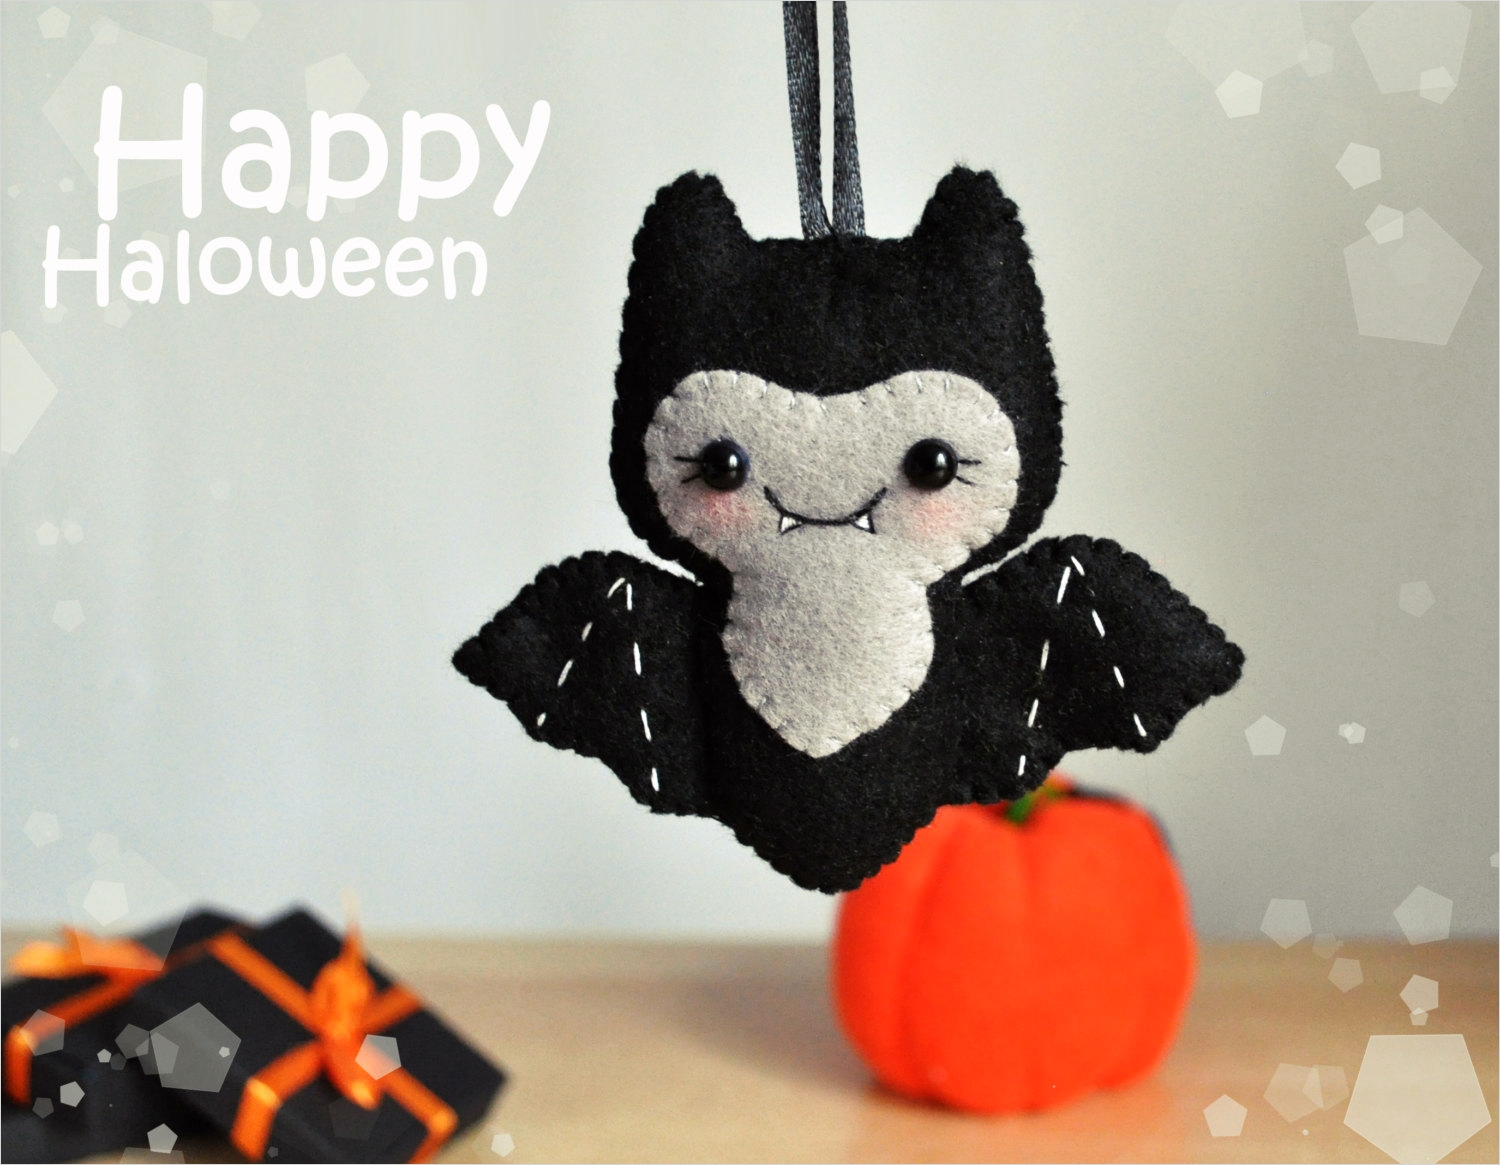 42 Cute Halloween Decoration Ideas 24 Cute Halloween Decorations – Festival Collections 3